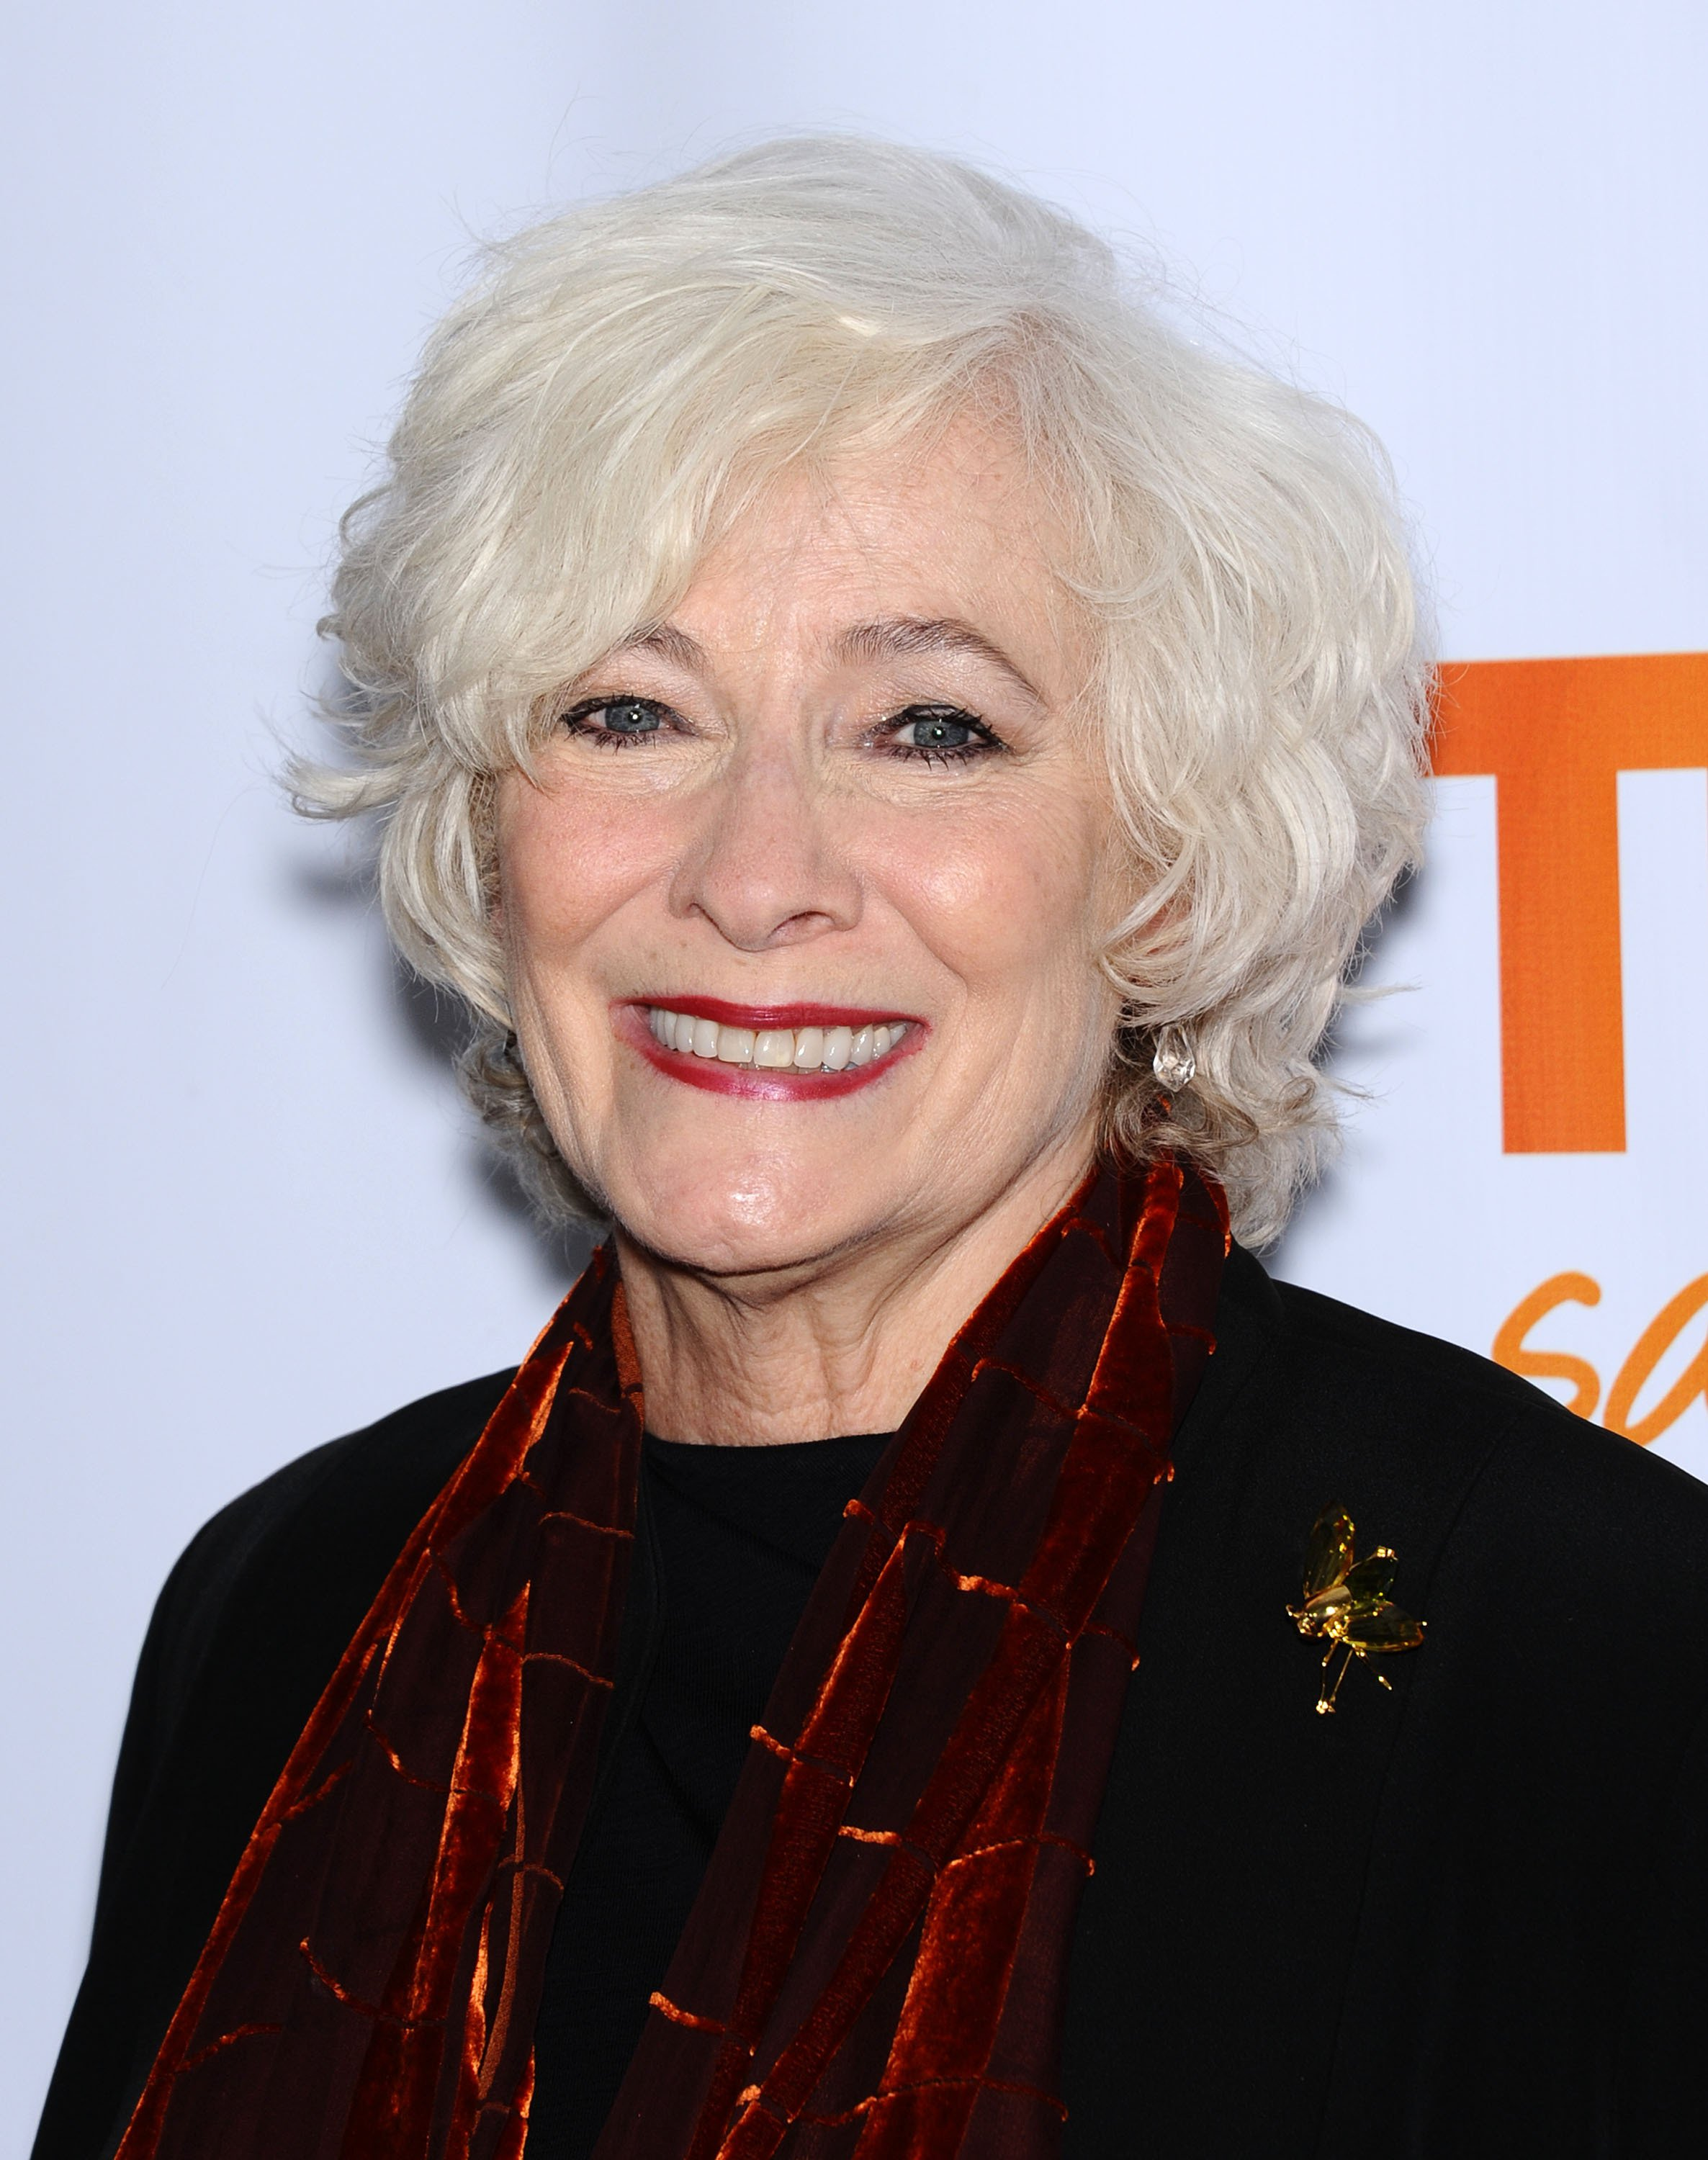 Betty Buckley arrives to Trevor Project Honors Katy Perry on December 2, 2012 in Hollywood, Los Angeles   Photo: Shutterstock